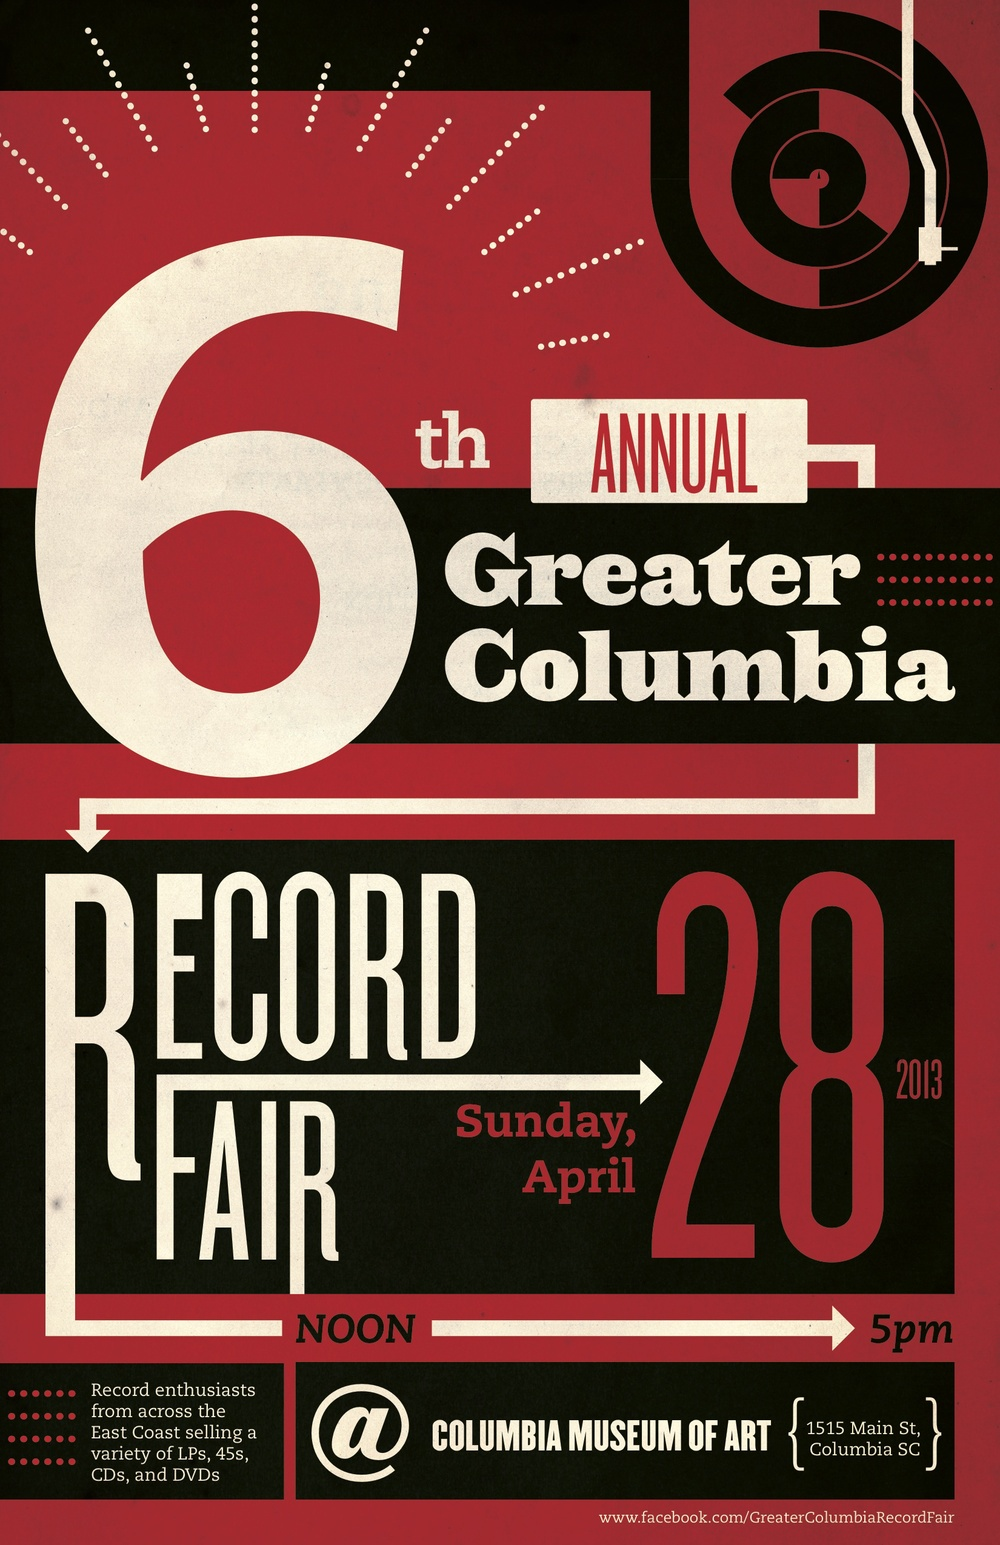 Promotional Poster for the 6th Annual Greater Columbia Record Fair